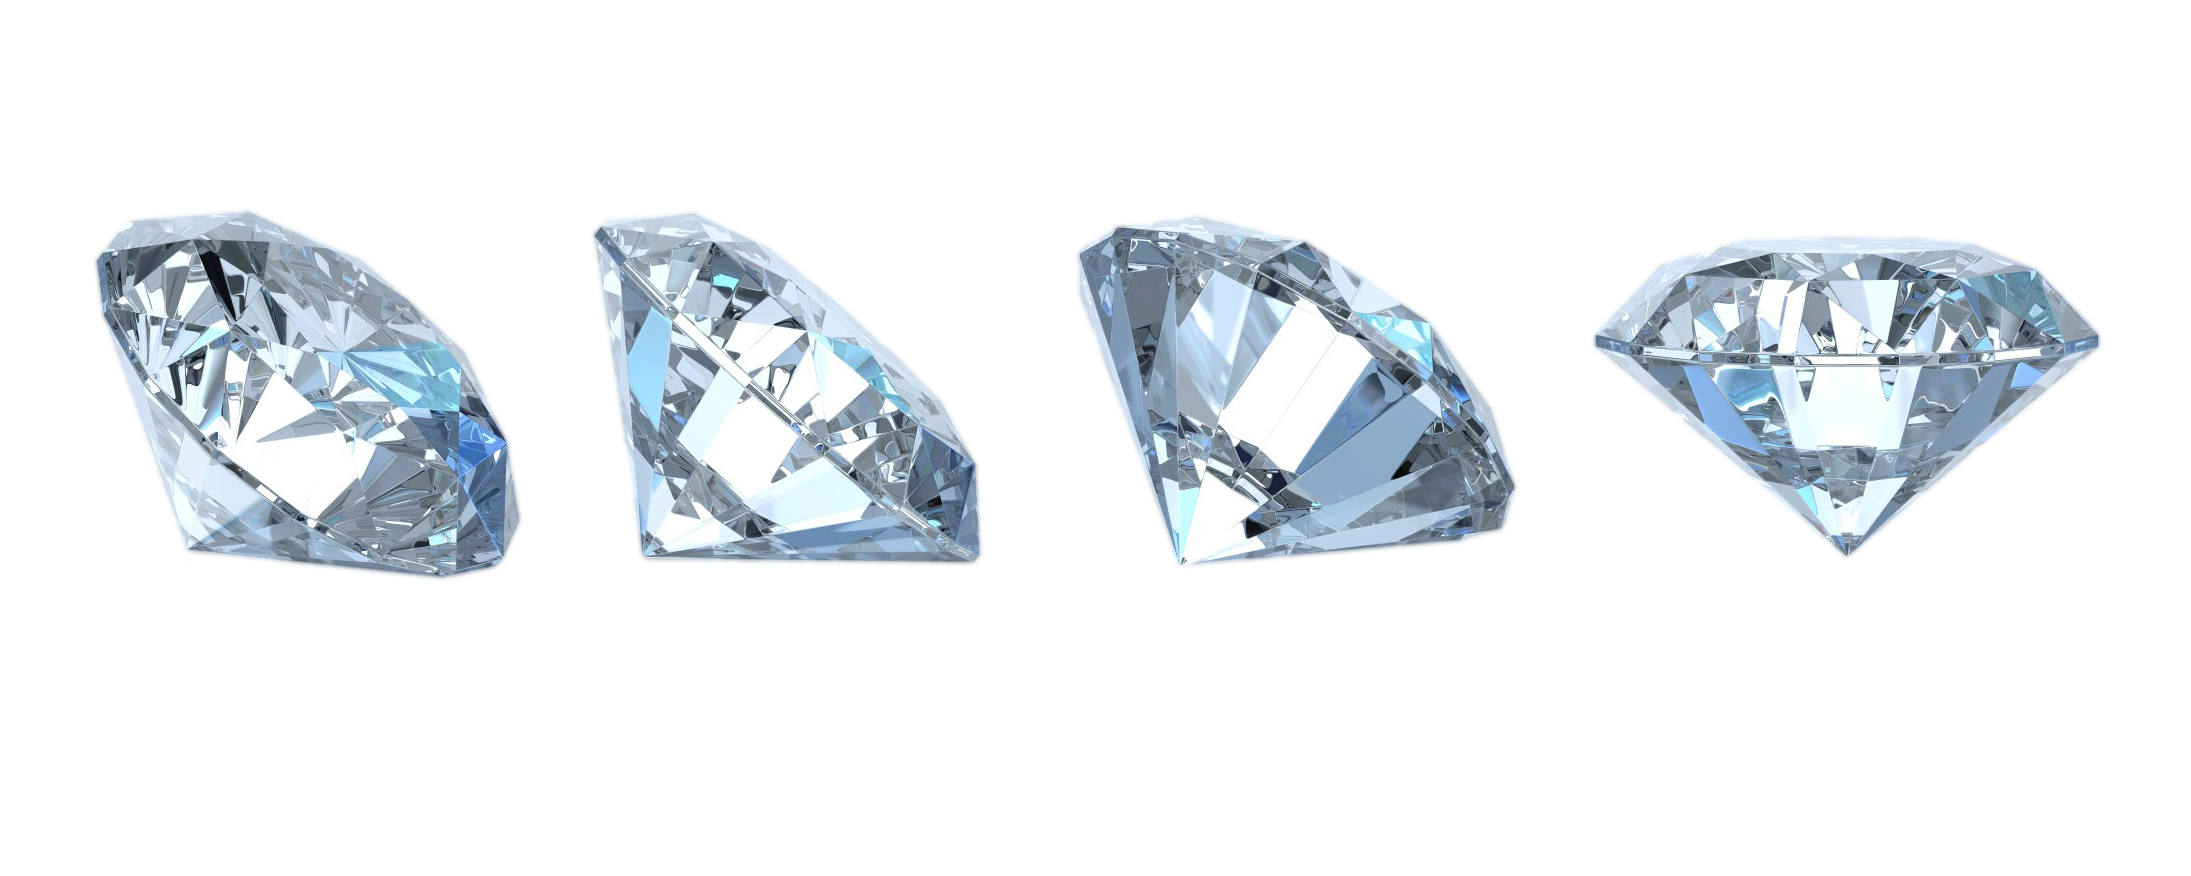 Minecraft   276 further Cross likewise Diamond Industrys Uncertain Future further Gem jewel precious stone yellow zircon icon as well Pollution Factory Symbol Svg. on diamond transparent icon